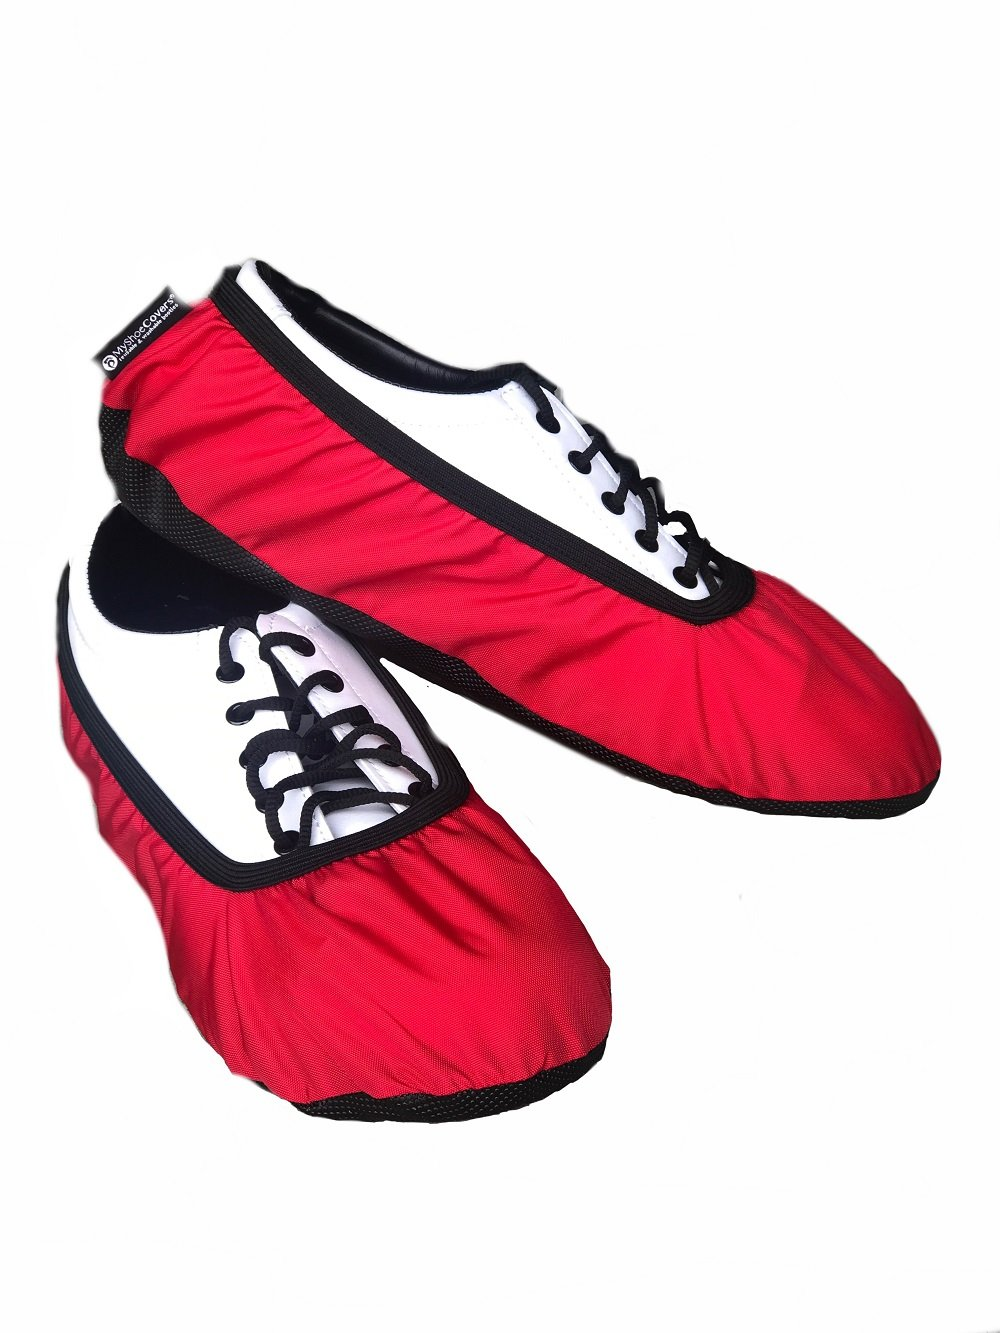 MyShoeCovers Premium Bowling Shoe Covers - Pair | Durable Quality Construction | Red - Large